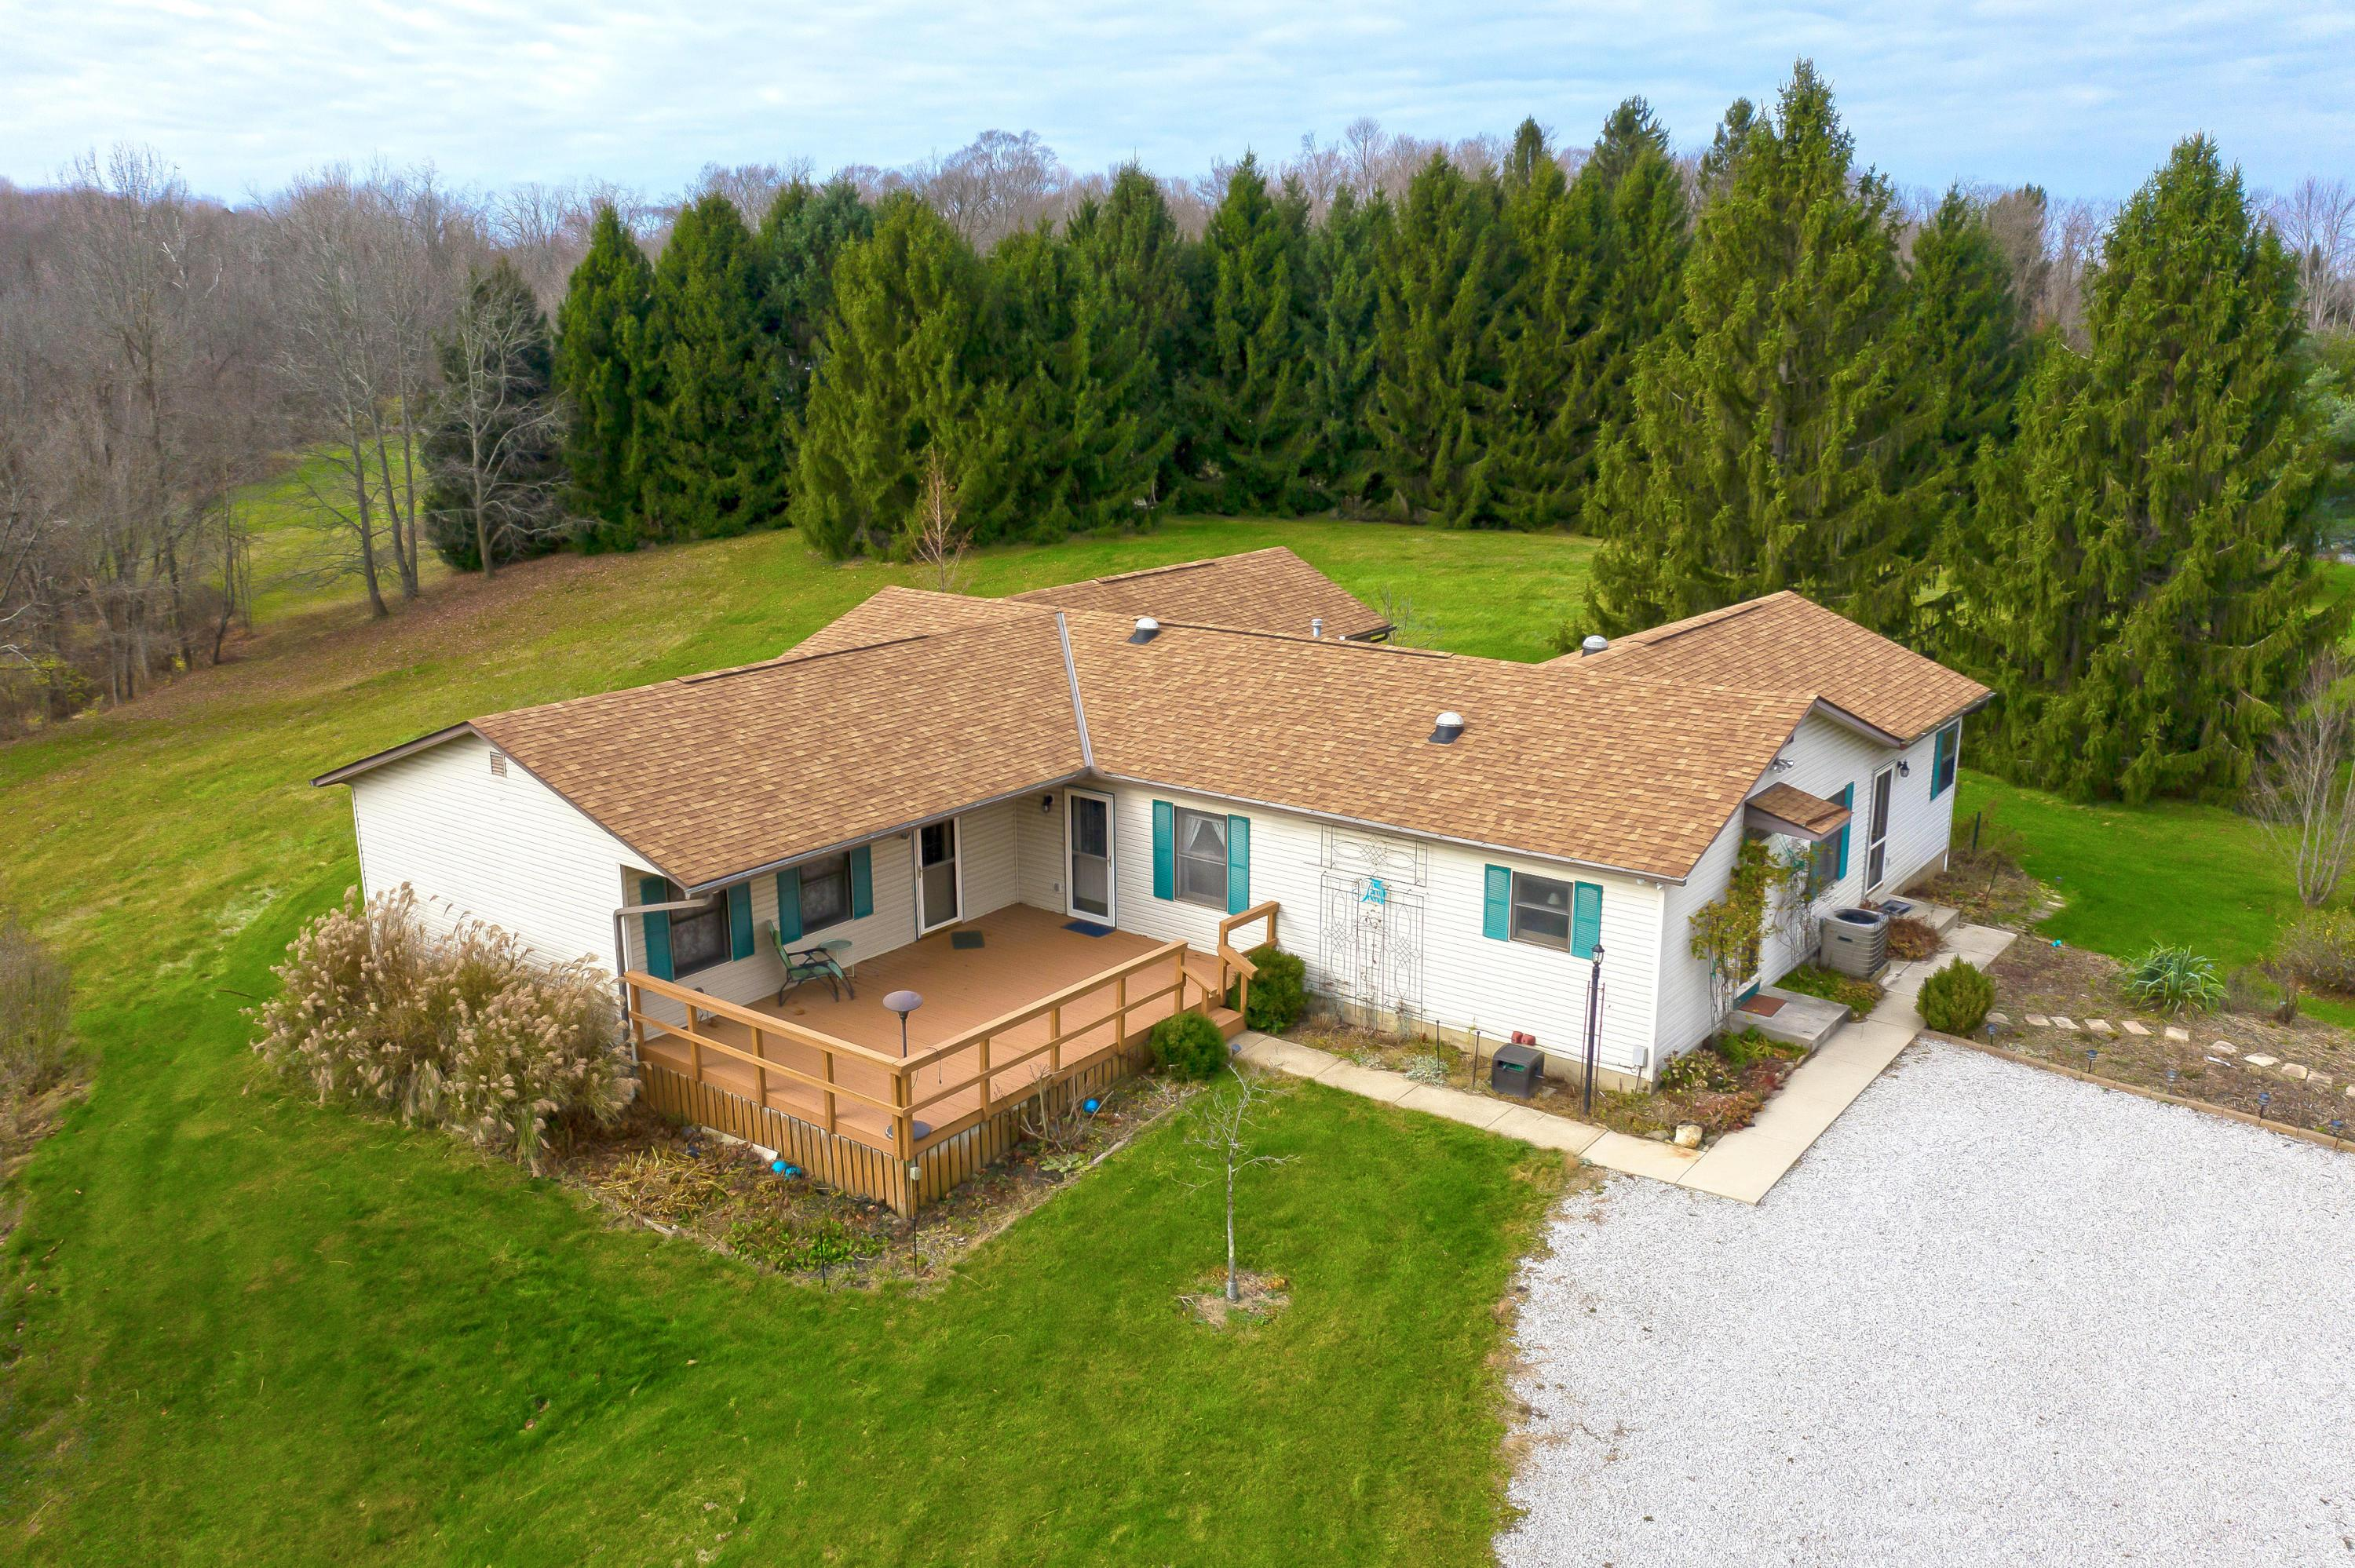 3663 Hazelton Etna Road, Johnstown, Ohio 43031, 4 Bedrooms Bedrooms, ,3 BathroomsBathrooms,Residential,For Sale,Hazelton Etna,220041112